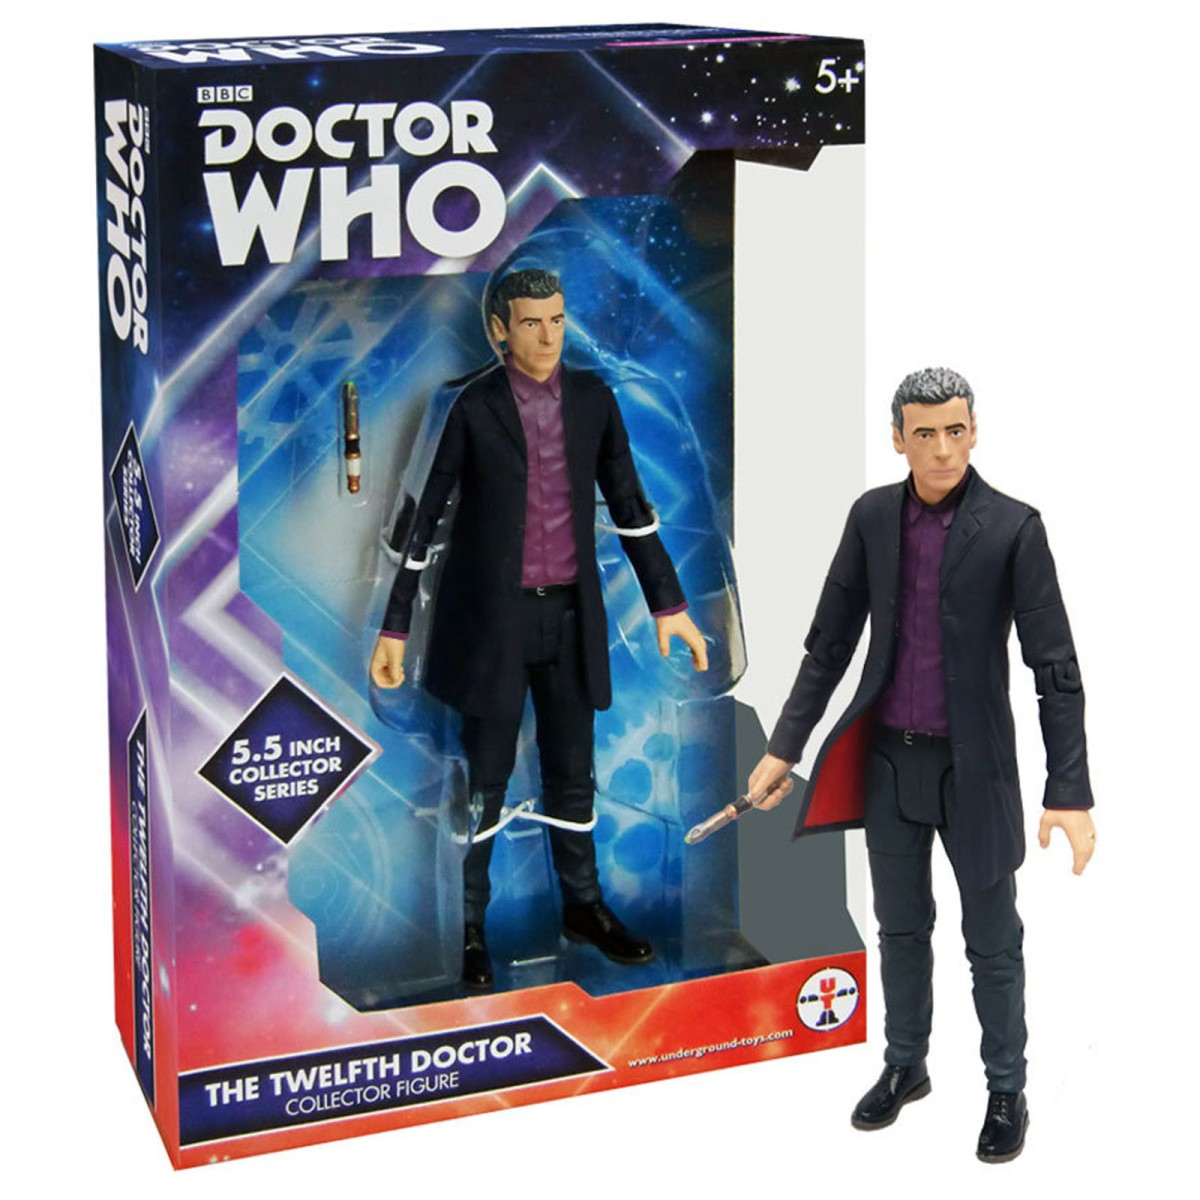 12th Doctor (Purple Shirt) - $15. A great stocking stuffer for the price. http://amzn.to/2fTdKwb